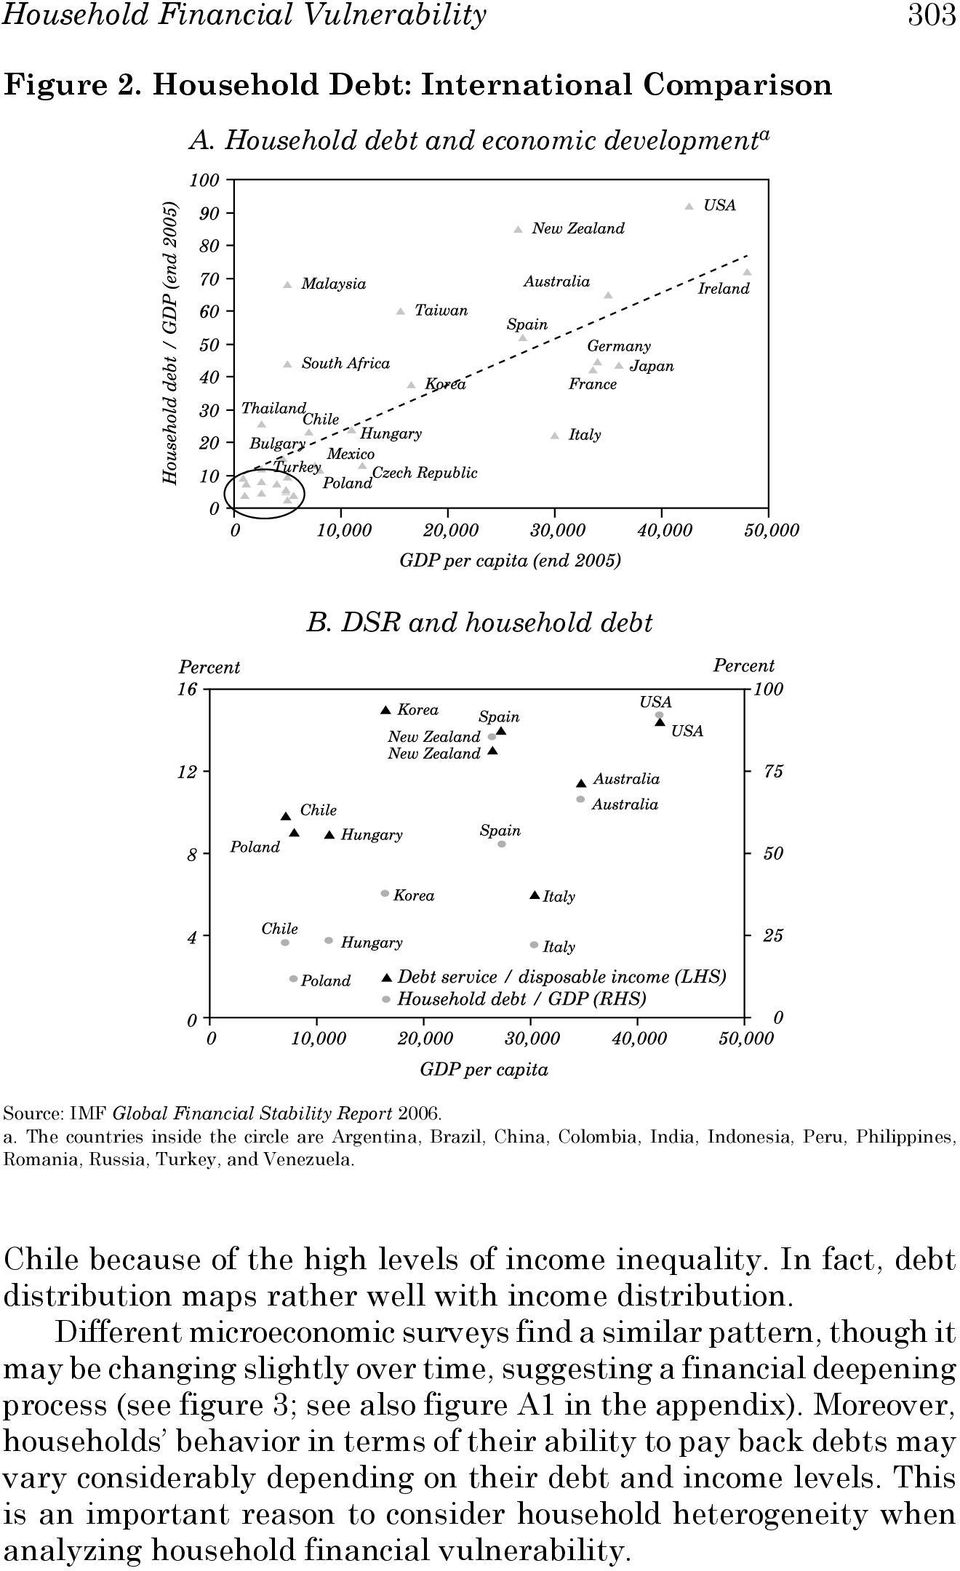 Chile because of the high levels of income inequality. In fact, debt distribution maps rather well with income distribution.